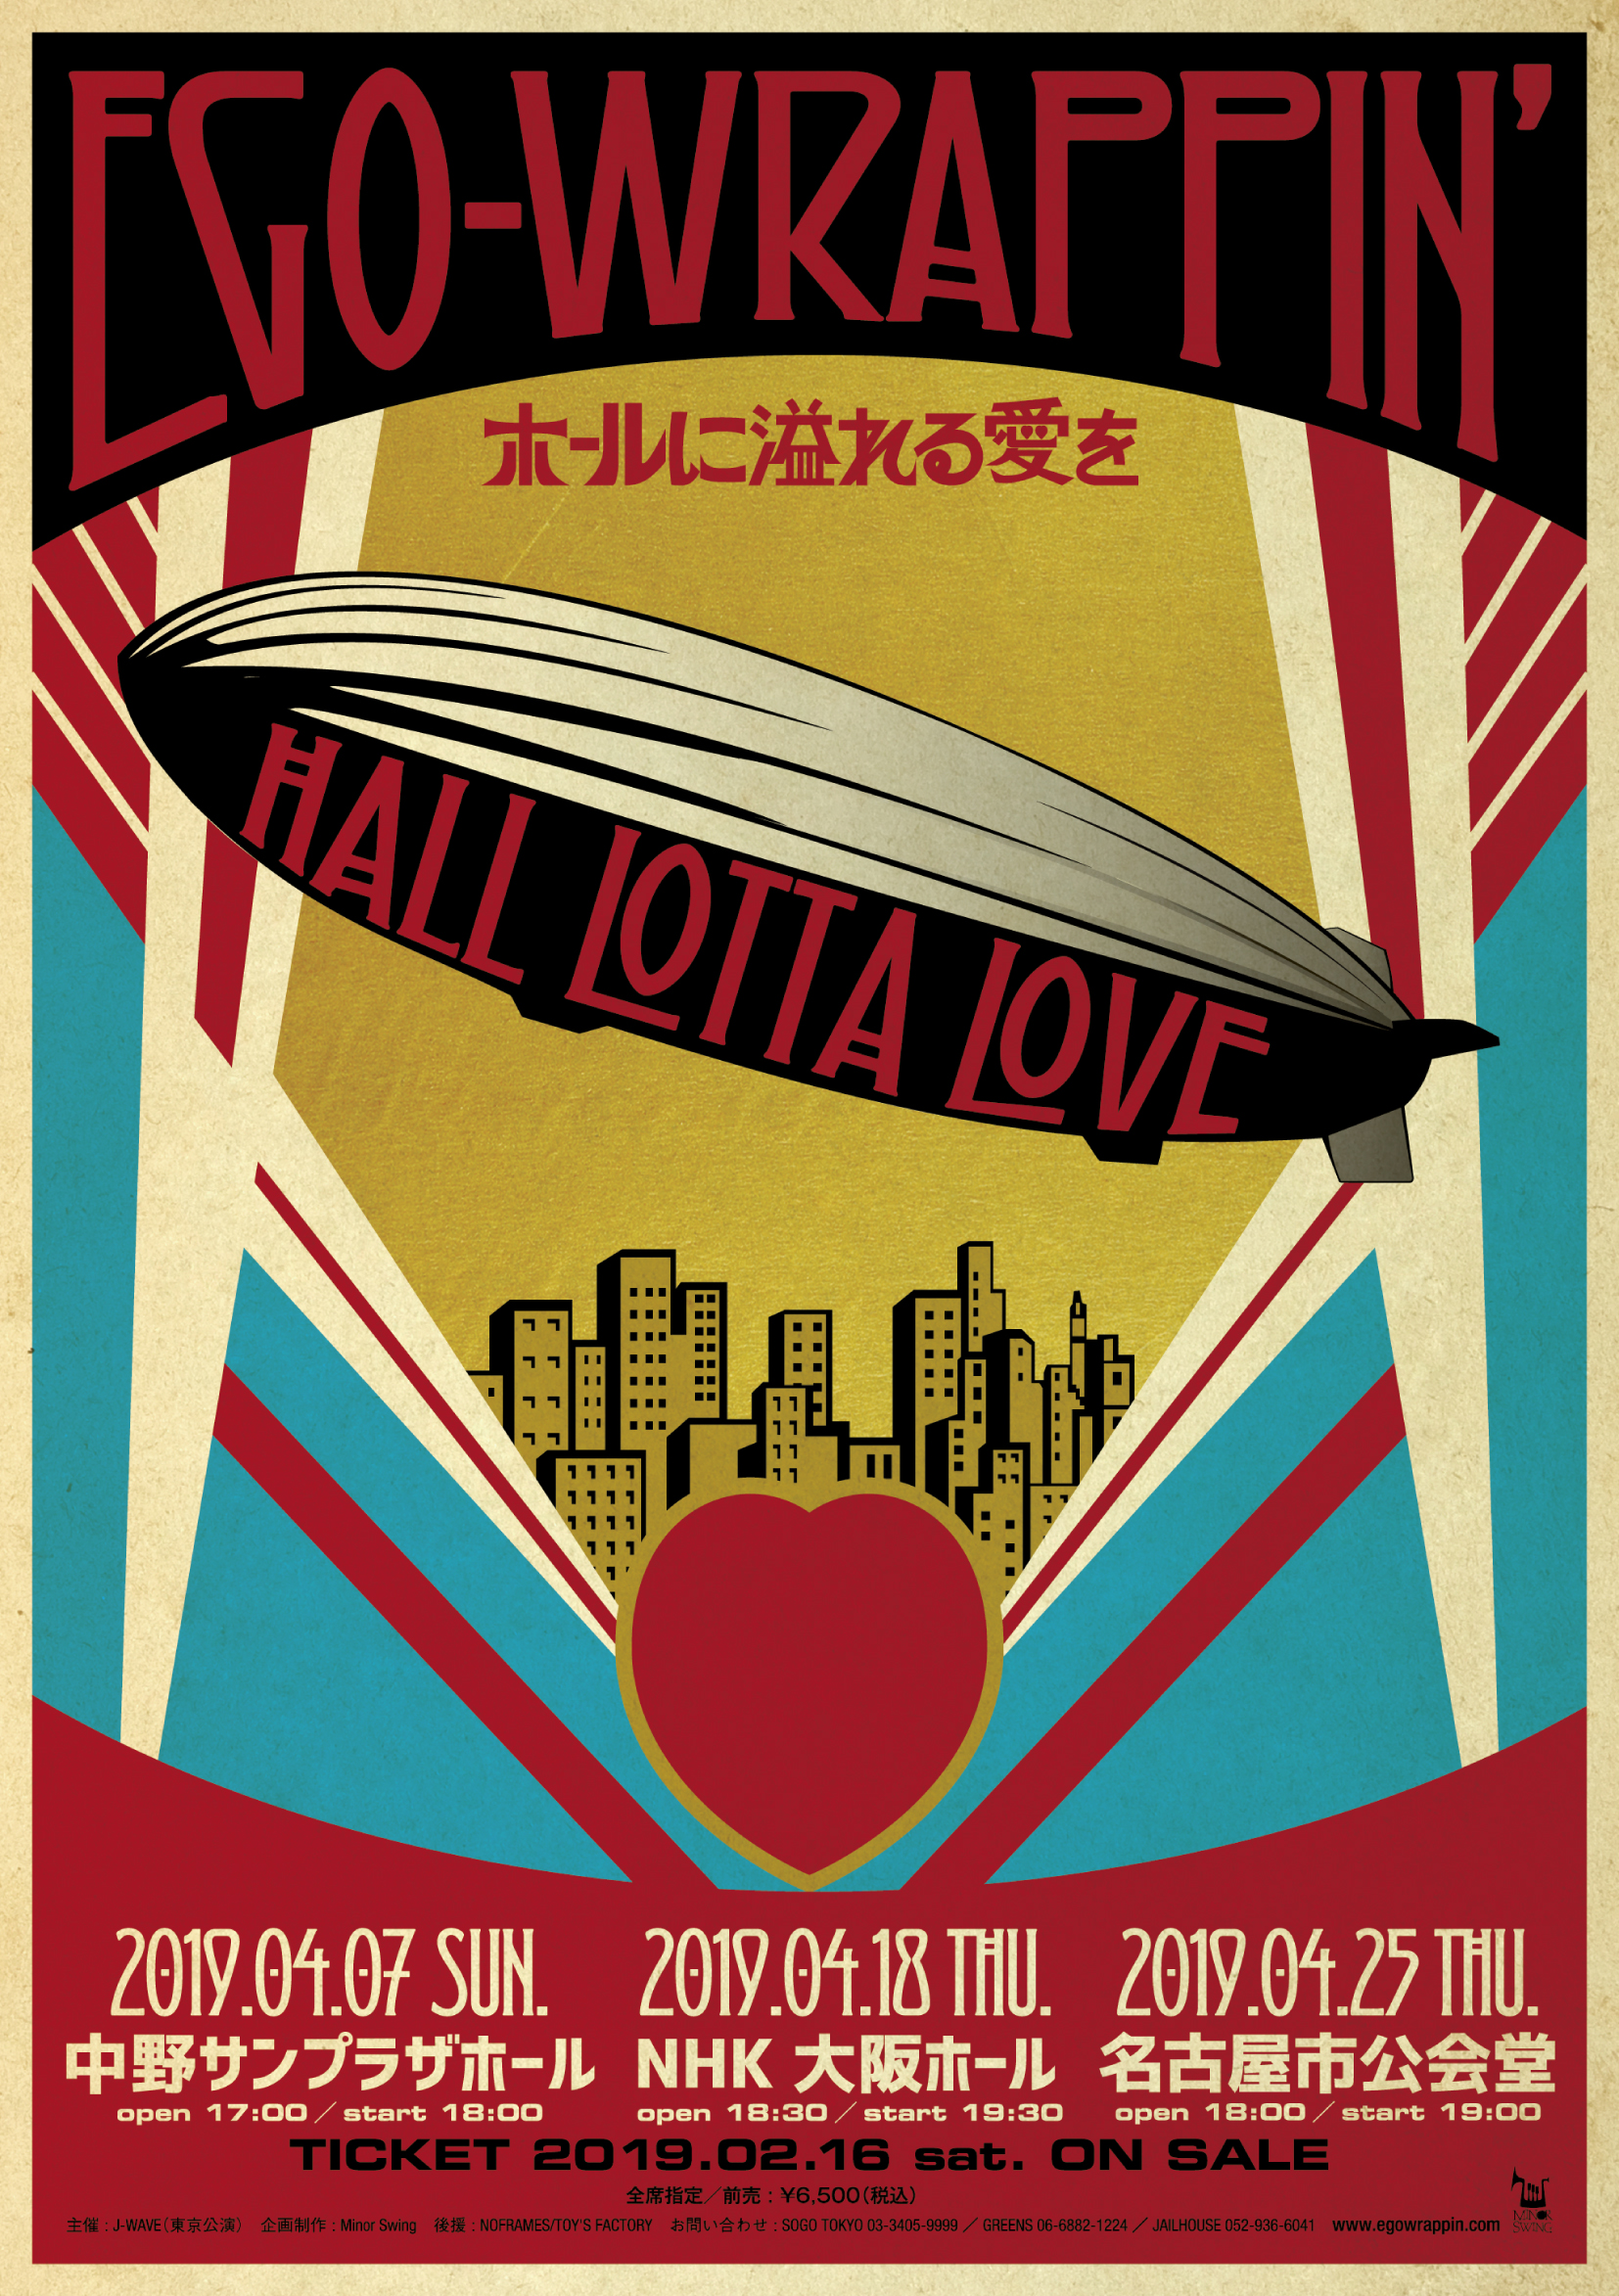 EGO-WRAPPIN' 「HALL LOTTA LOVE」 2019 Flyer